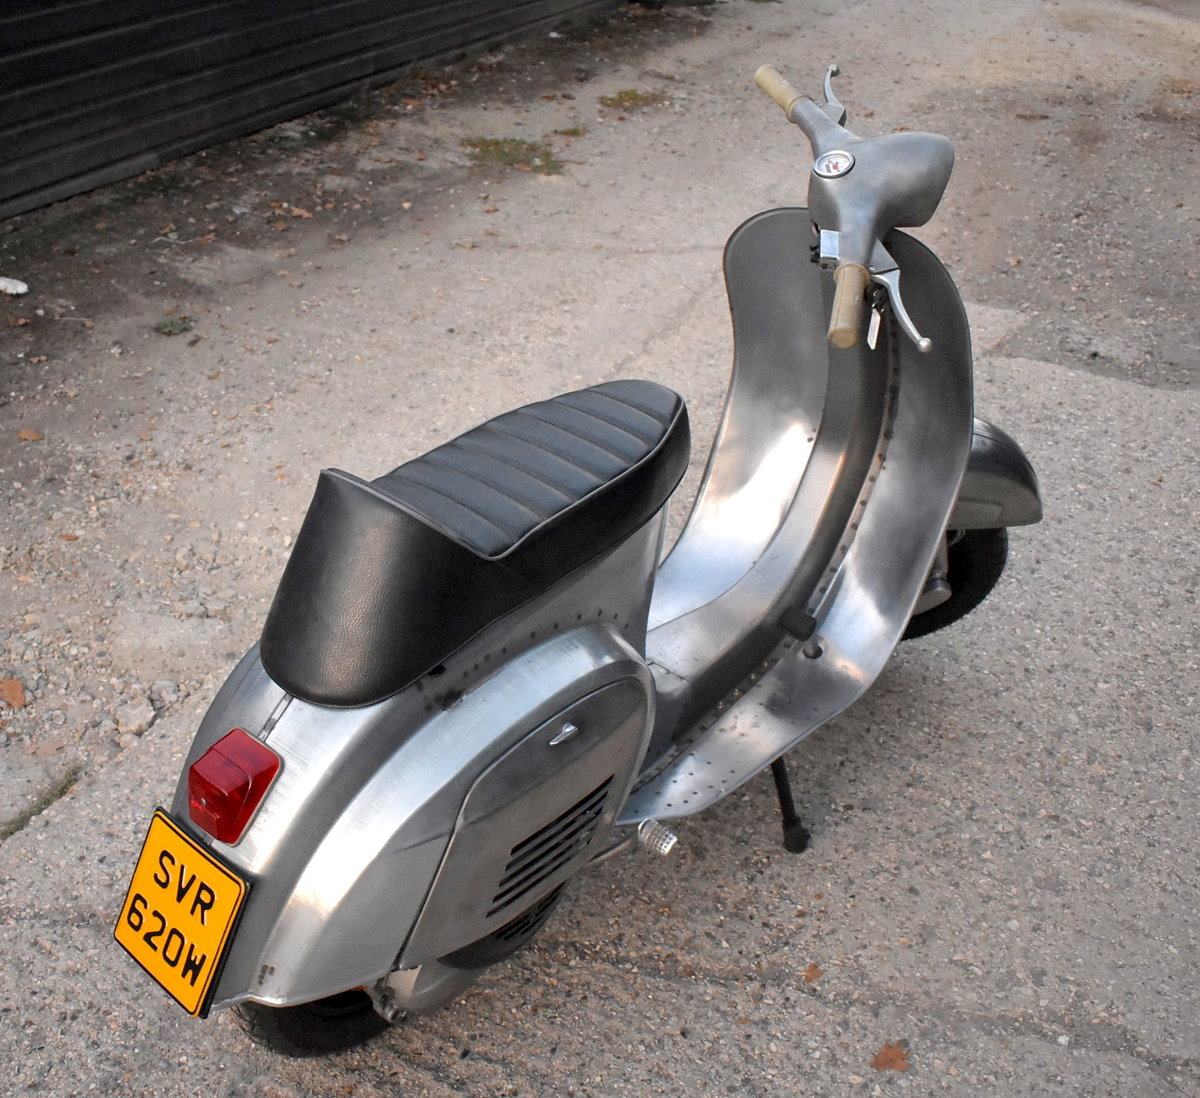 1981 PIAGGIO VESPA 100 - FULLY RESTORED - FINISHED IN RAW STEEL For Sale (picture 2 of 6)